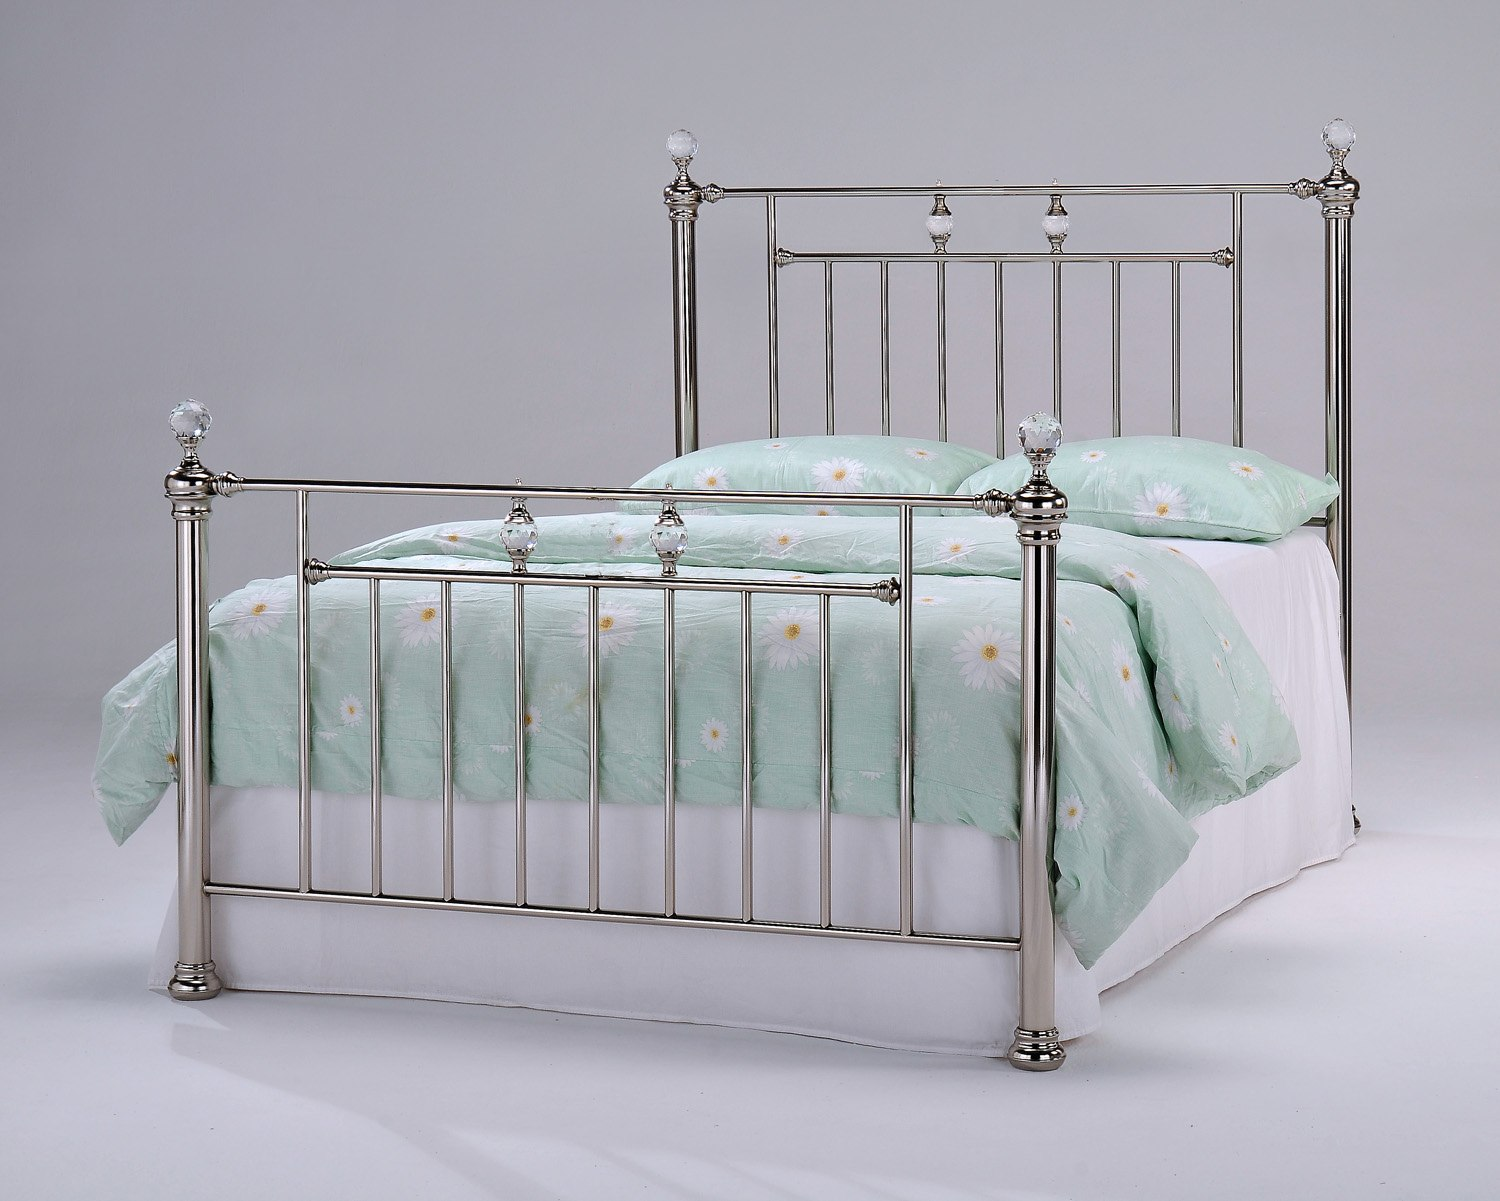 OPULENCE metal bed Available from the World of Beds, Askern, Doncaster, South Yorkshire